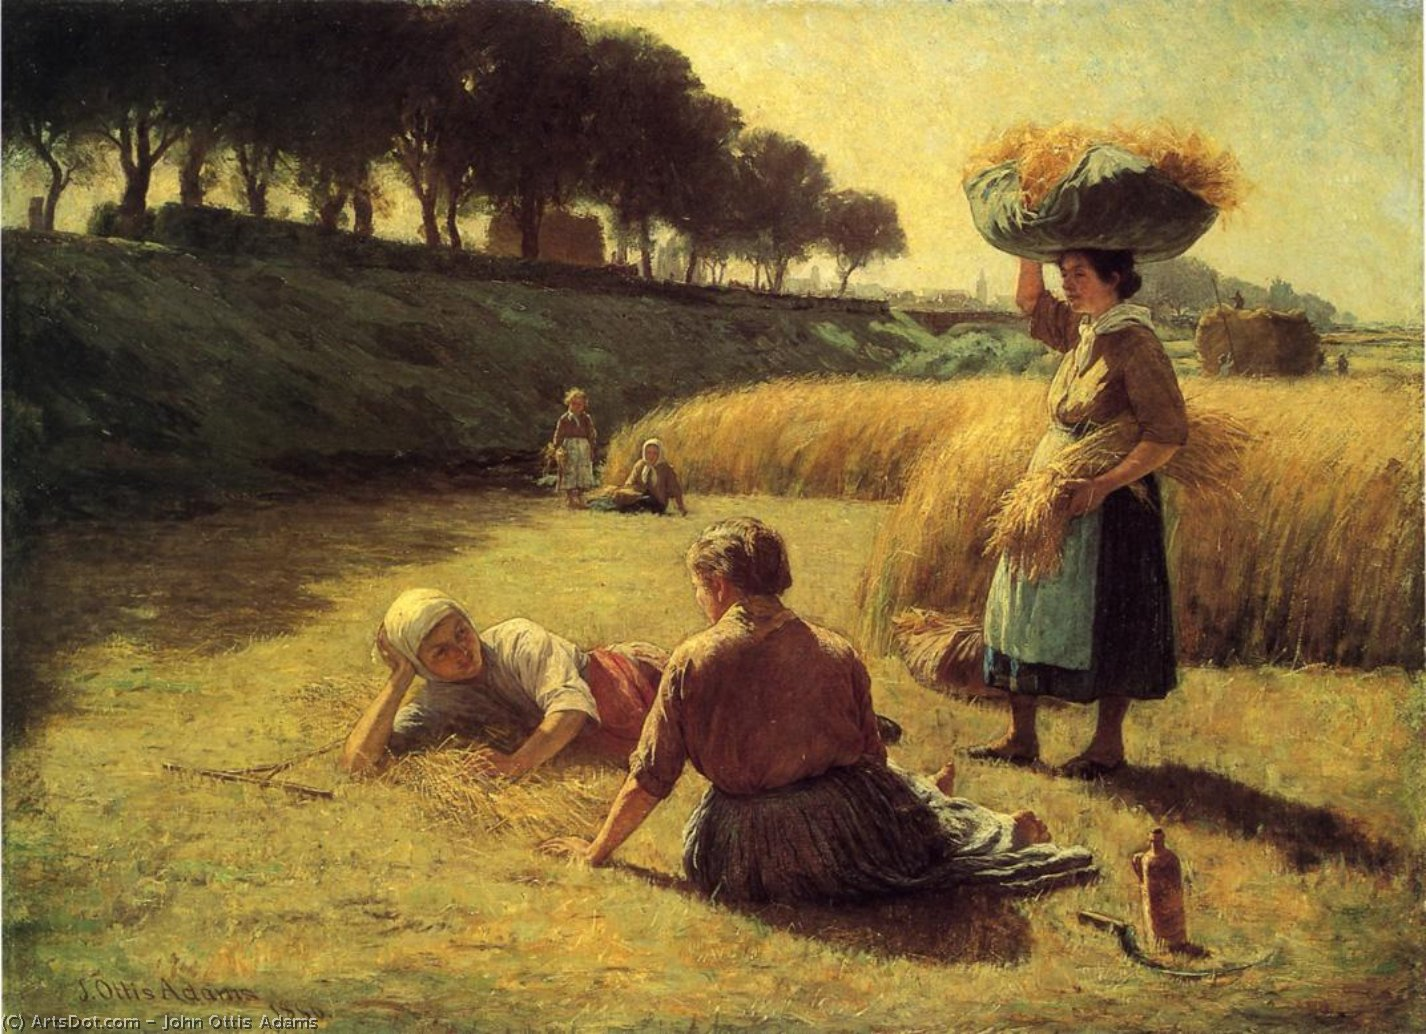 Wikioo.org - The Encyclopedia of Fine Arts - Painting, Artwork by John Ottis Adams - Gleaners at Rest (also known as Nooning)